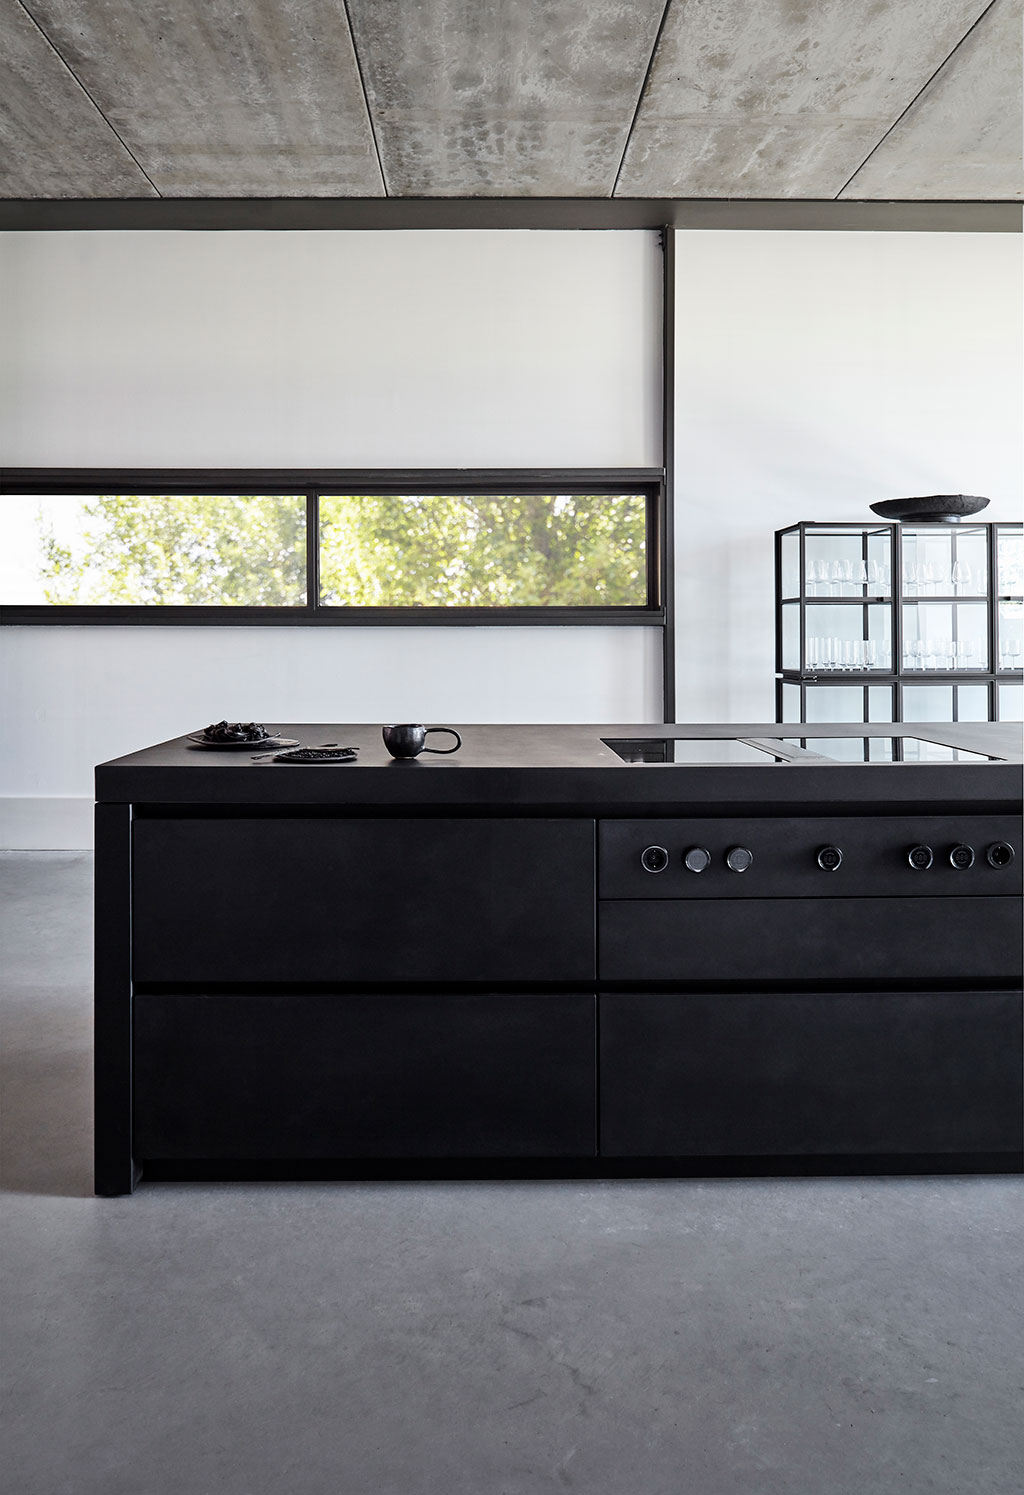 Piet Boon kitchens | Stek Magazine